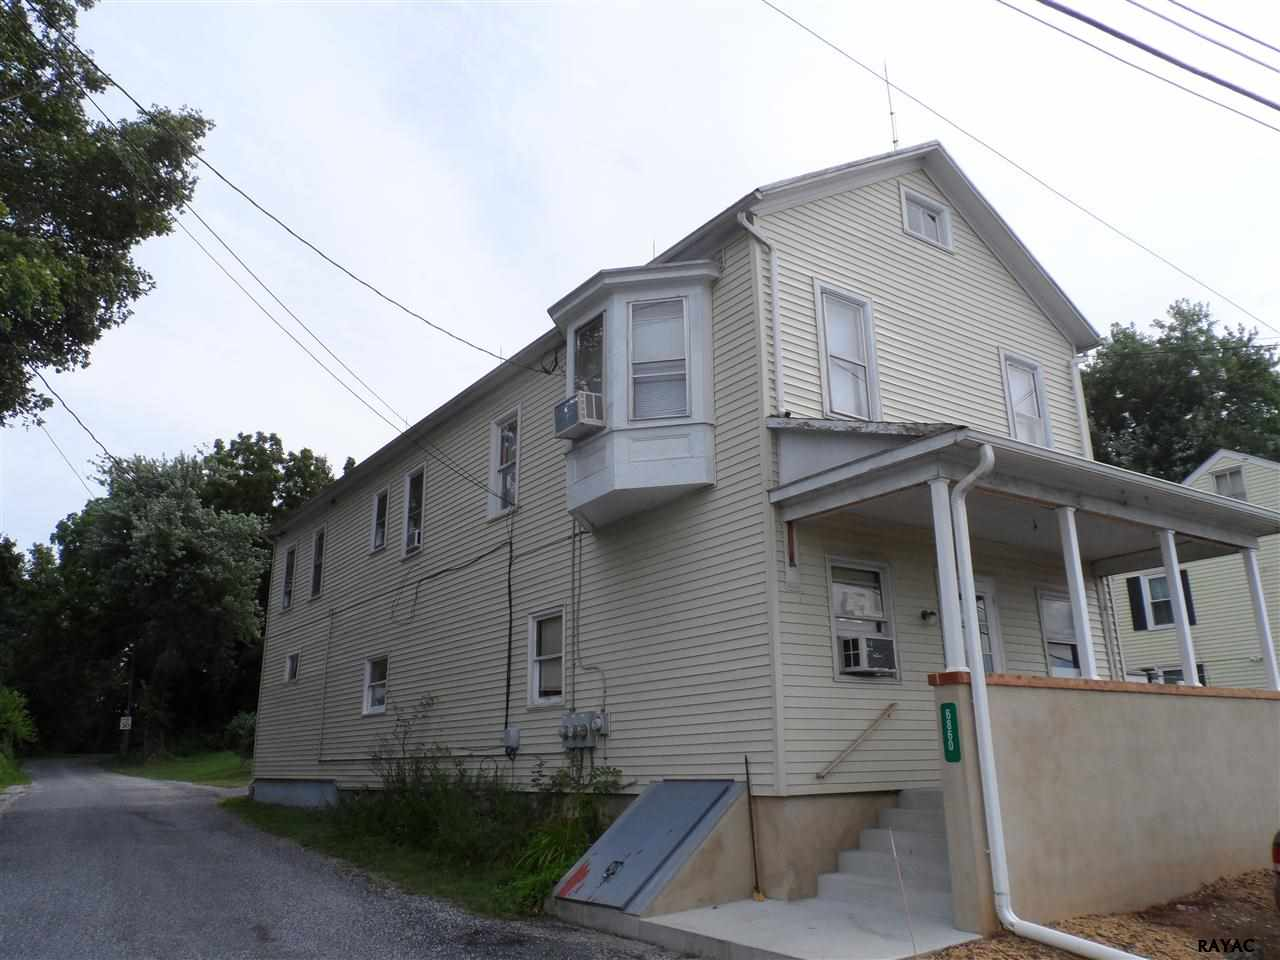 6860 Lincoln Hwy, Thomasville, PA 17364